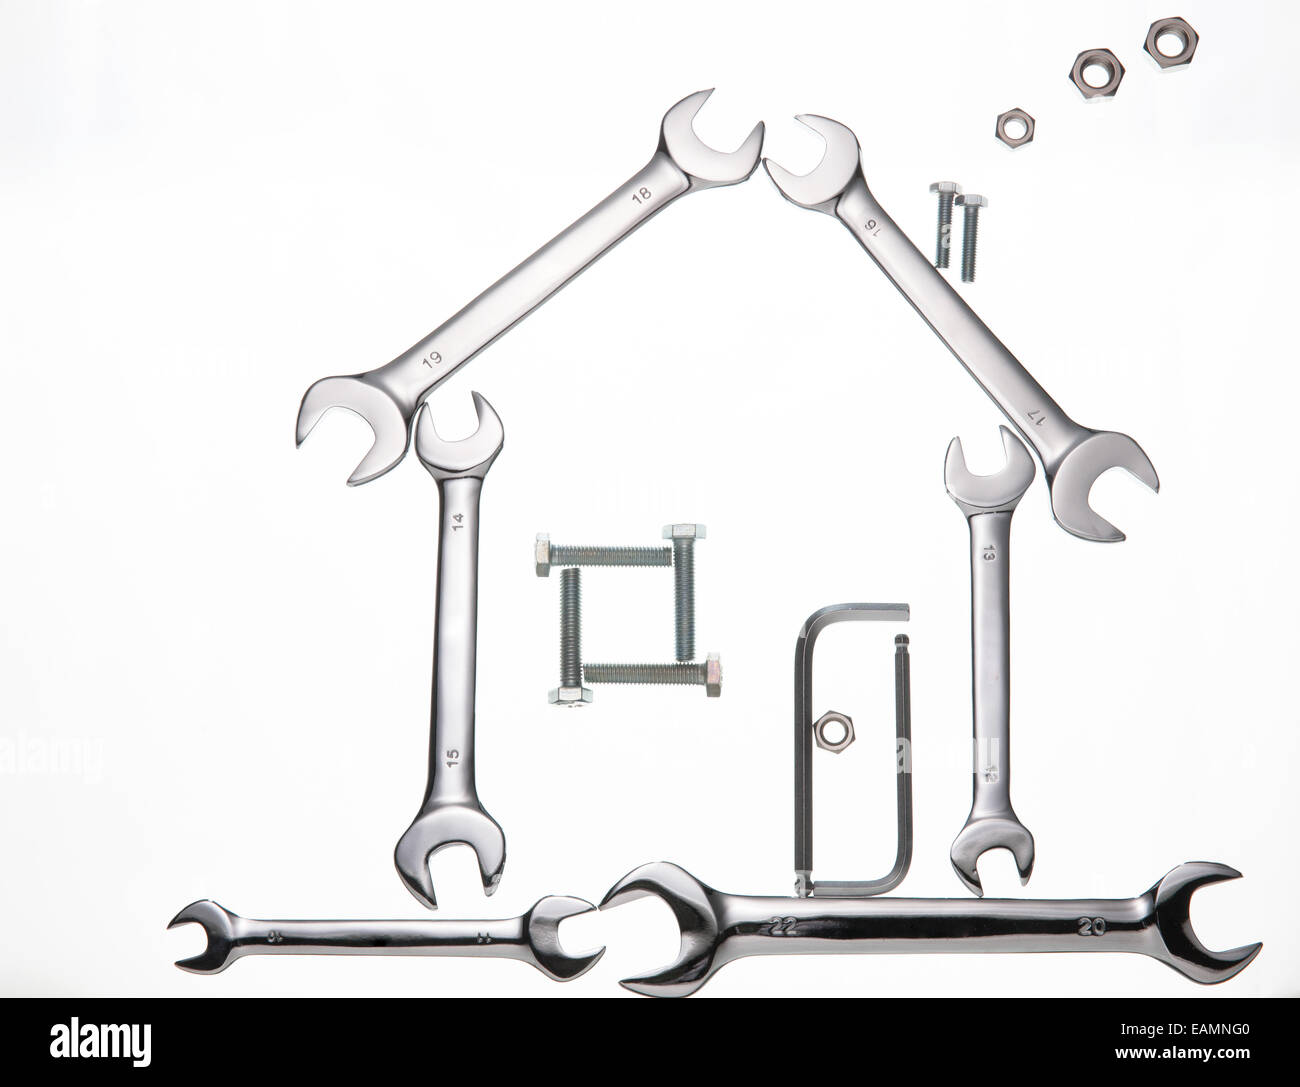 Using a wrench to construct houses - Stock Image